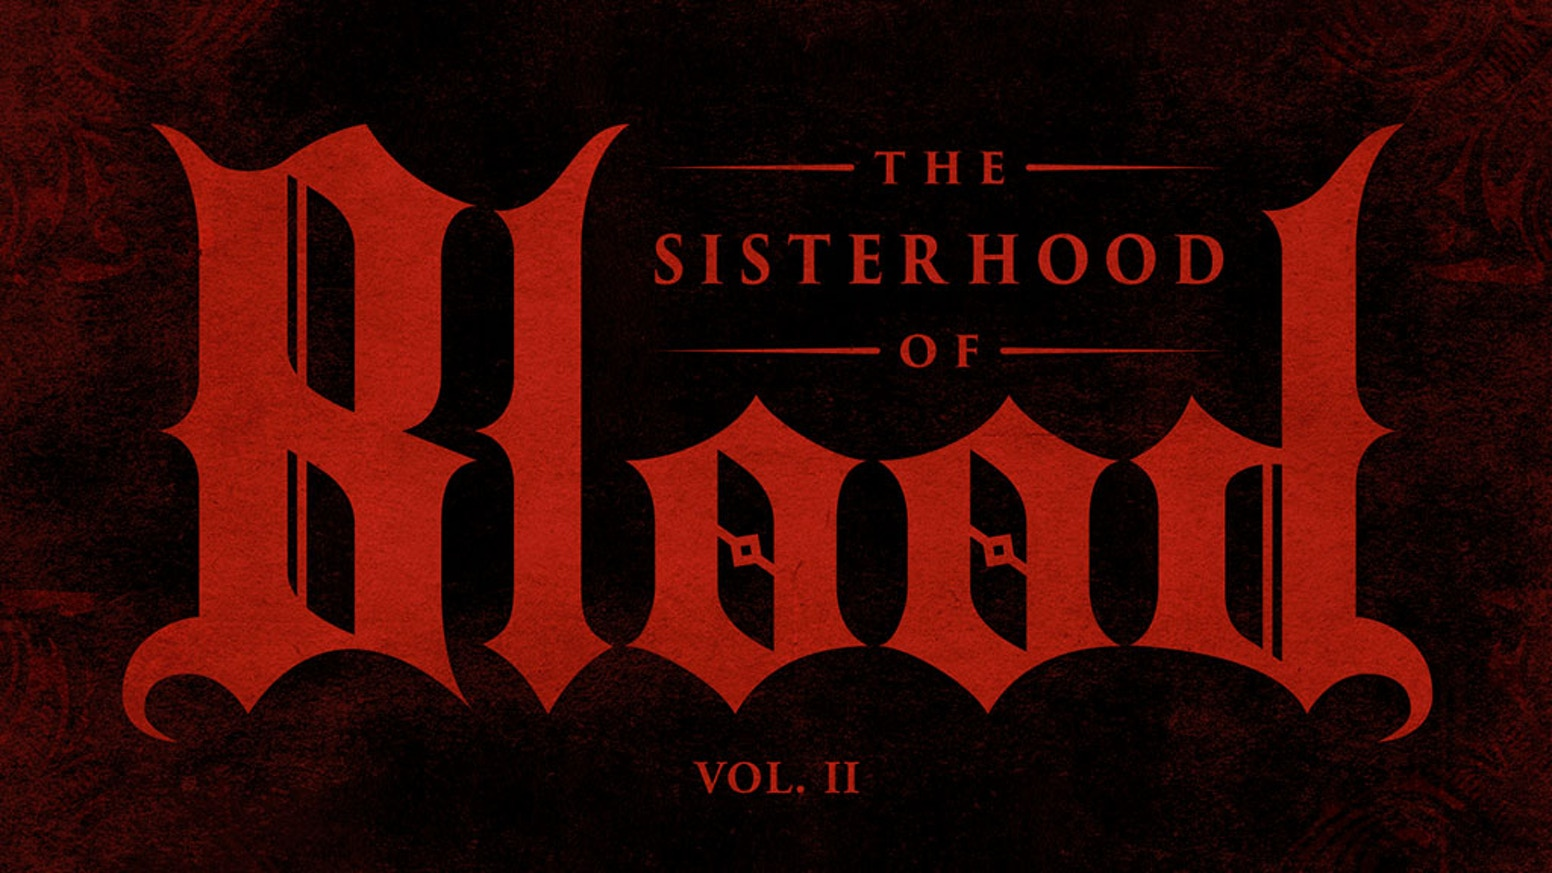 Vol 1 & 2 available - Discover the pivotal moments in the lives of 12 female vampires as they stalk the streets of Victorian London.